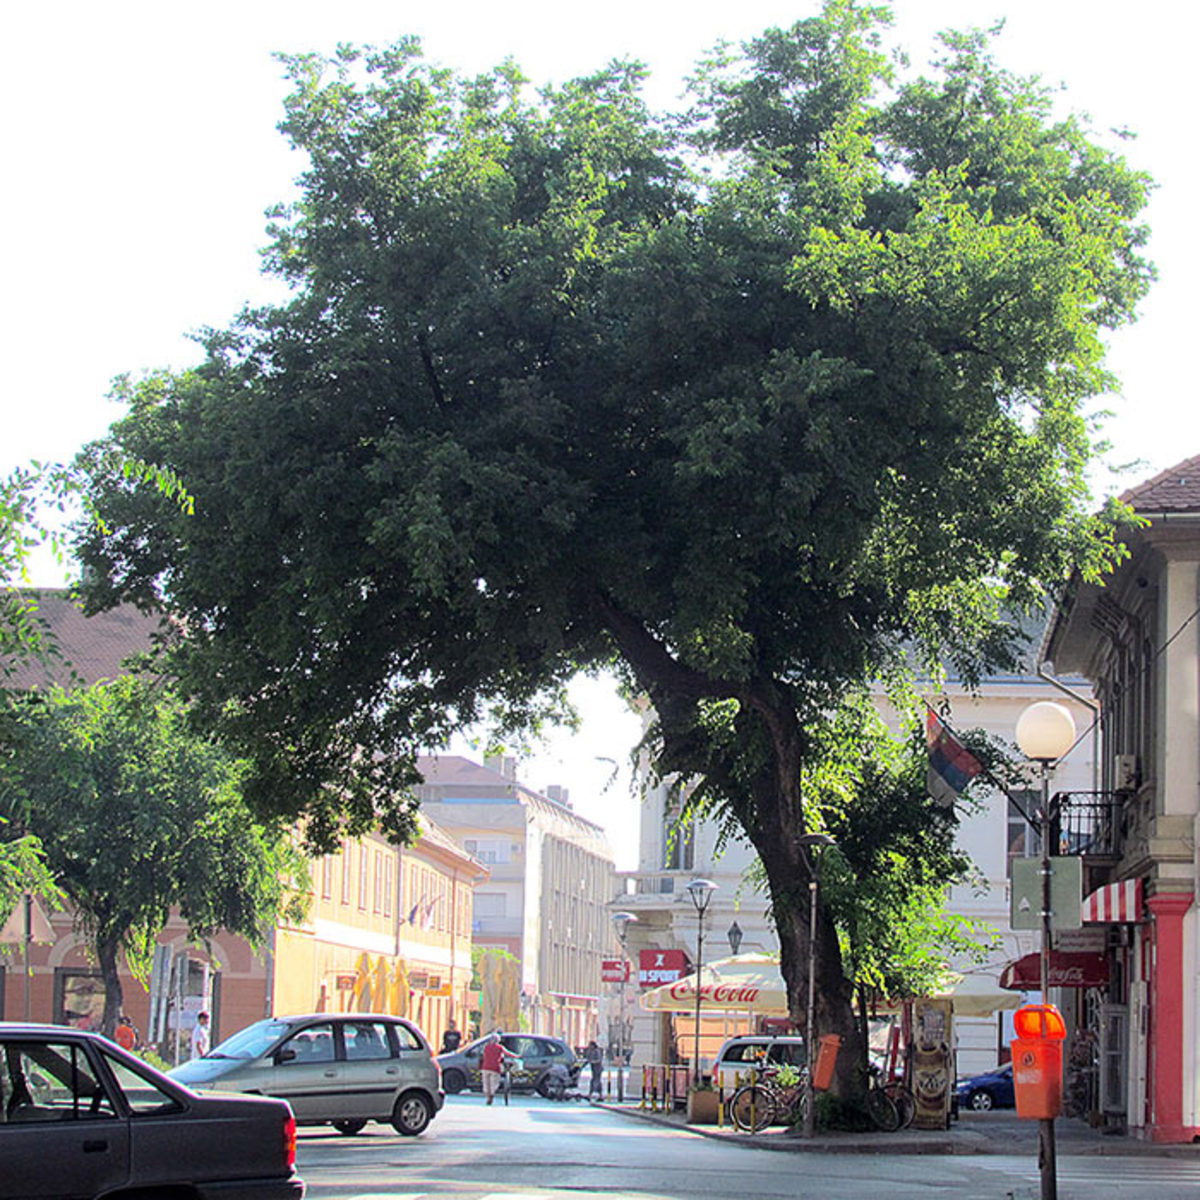 This hackberry growing in Sombor, Serbia, demonstrates the tree's tenacity in urban conditions.